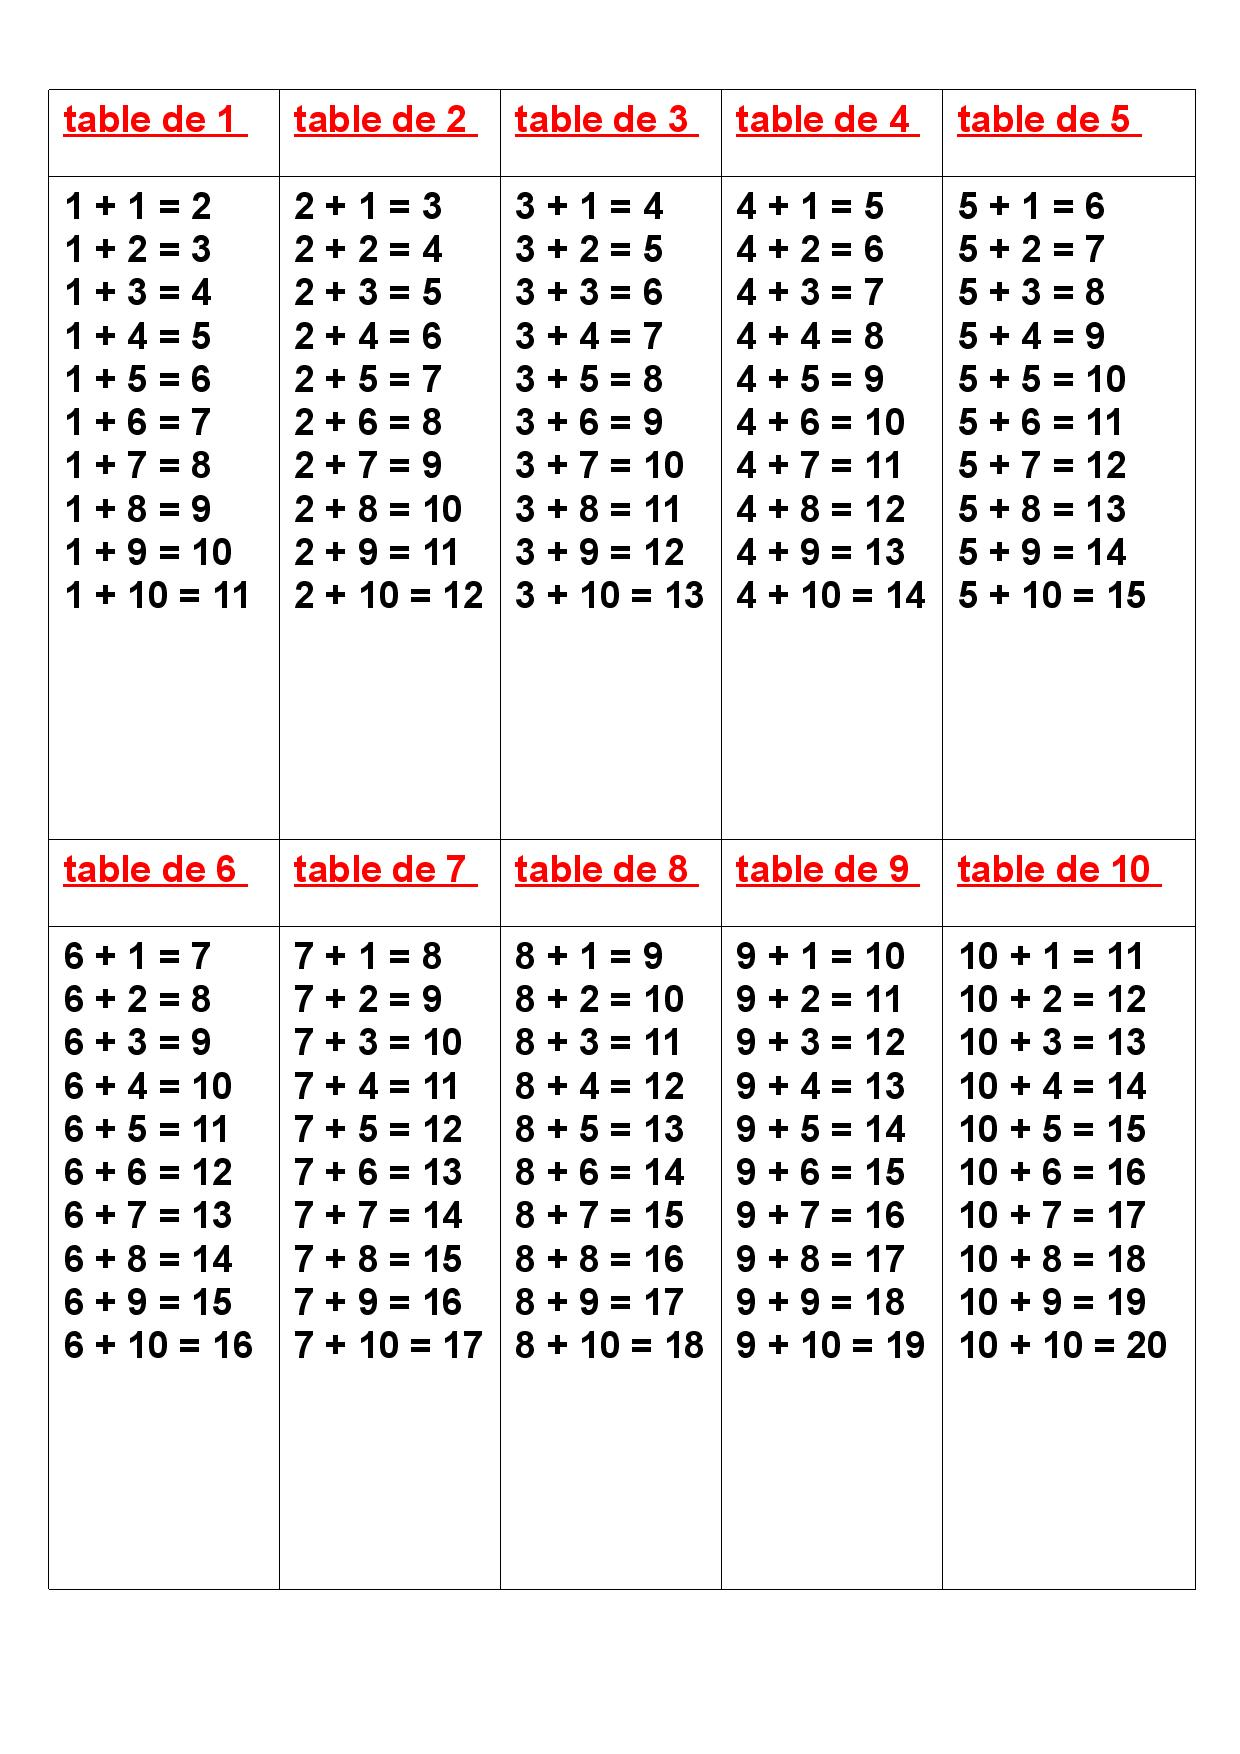 Les tables d 39 addition de 1 10 prepecole pour la classe - La table de multiplication de 8 ...